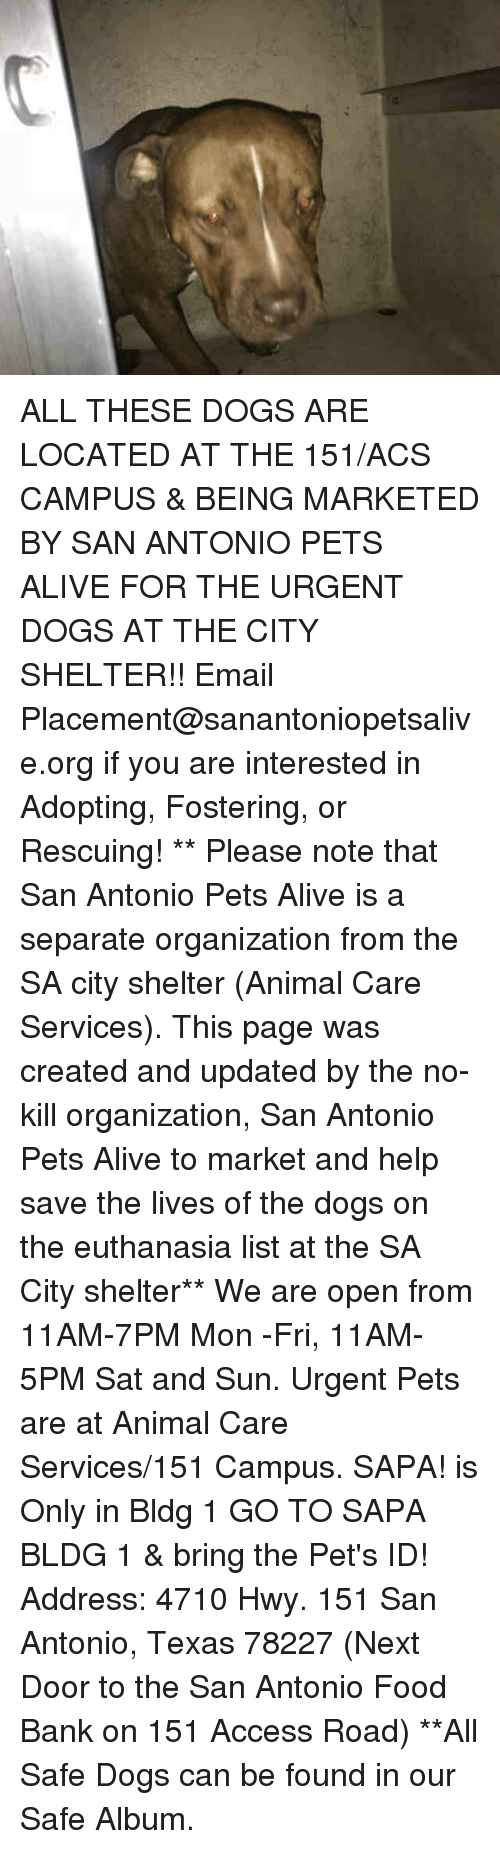 Alive, Dogs, and Food: ALL THESE DOGS ARE LOCATED AT THE 151/ACS CAMPUS & BEING MARKETED BY SAN ANTONIO PETS ALIVE FOR THE URGENT DOGS AT THE CITY SHELTER!!  Email Placement@sanantoniopetsalive.org if you are interested in Adopting, Fostering, or Rescuing!                                                                                                                                                                                                                                                                                                                                                             ** Please note that San Antonio Pets Alive is a separate organization from the SA city shelter (Animal Care Services). This page was created and updated by the no-kill organization, San Antonio Pets Alive to market and help save the lives of the dogs on the euthanasia list at the SA City shelter**  We are open from 11AM-7PM Mon -Fri, 11AM-5PM Sat and Sun. Urgent Pets are at Animal Care Services/151 Campus. SAPA! is Only in Bldg 1 GO TO SAPA BLDG 1 & bring the Pet's ID! Address: 4710 Hwy. 151 San Antonio, Texas 78227 (Next Door to the San Antonio Food Bank on 151 Access Road) **All Safe Dogs can be found in our Safe Album.